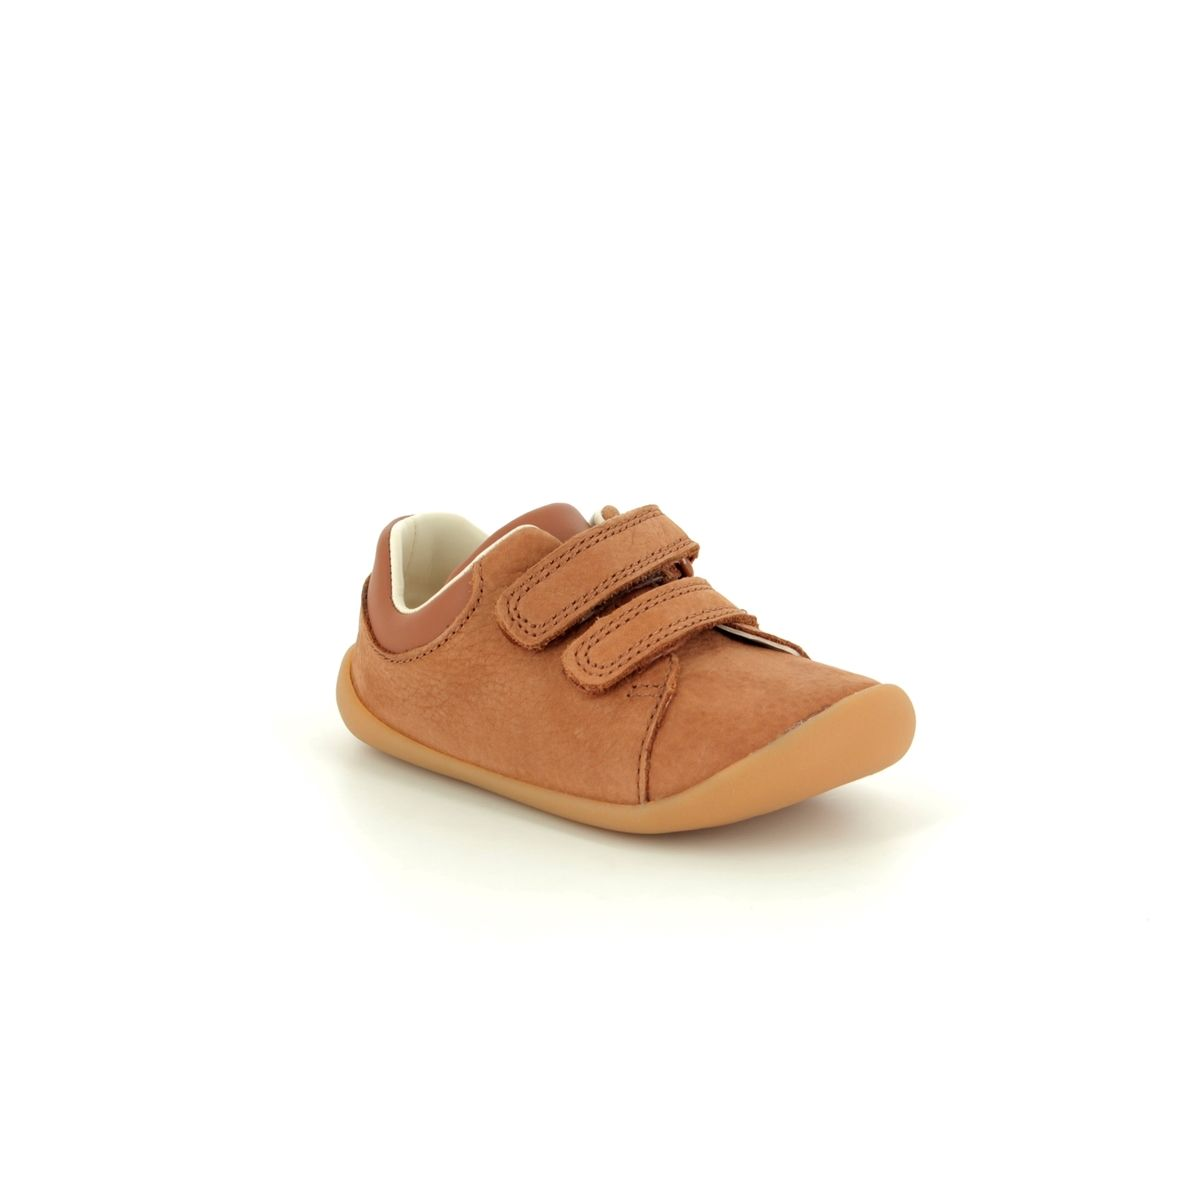 181fc21ab1f57 Clarks First Shoes - Tan Leather - 422907G ROAMER CRAFT T